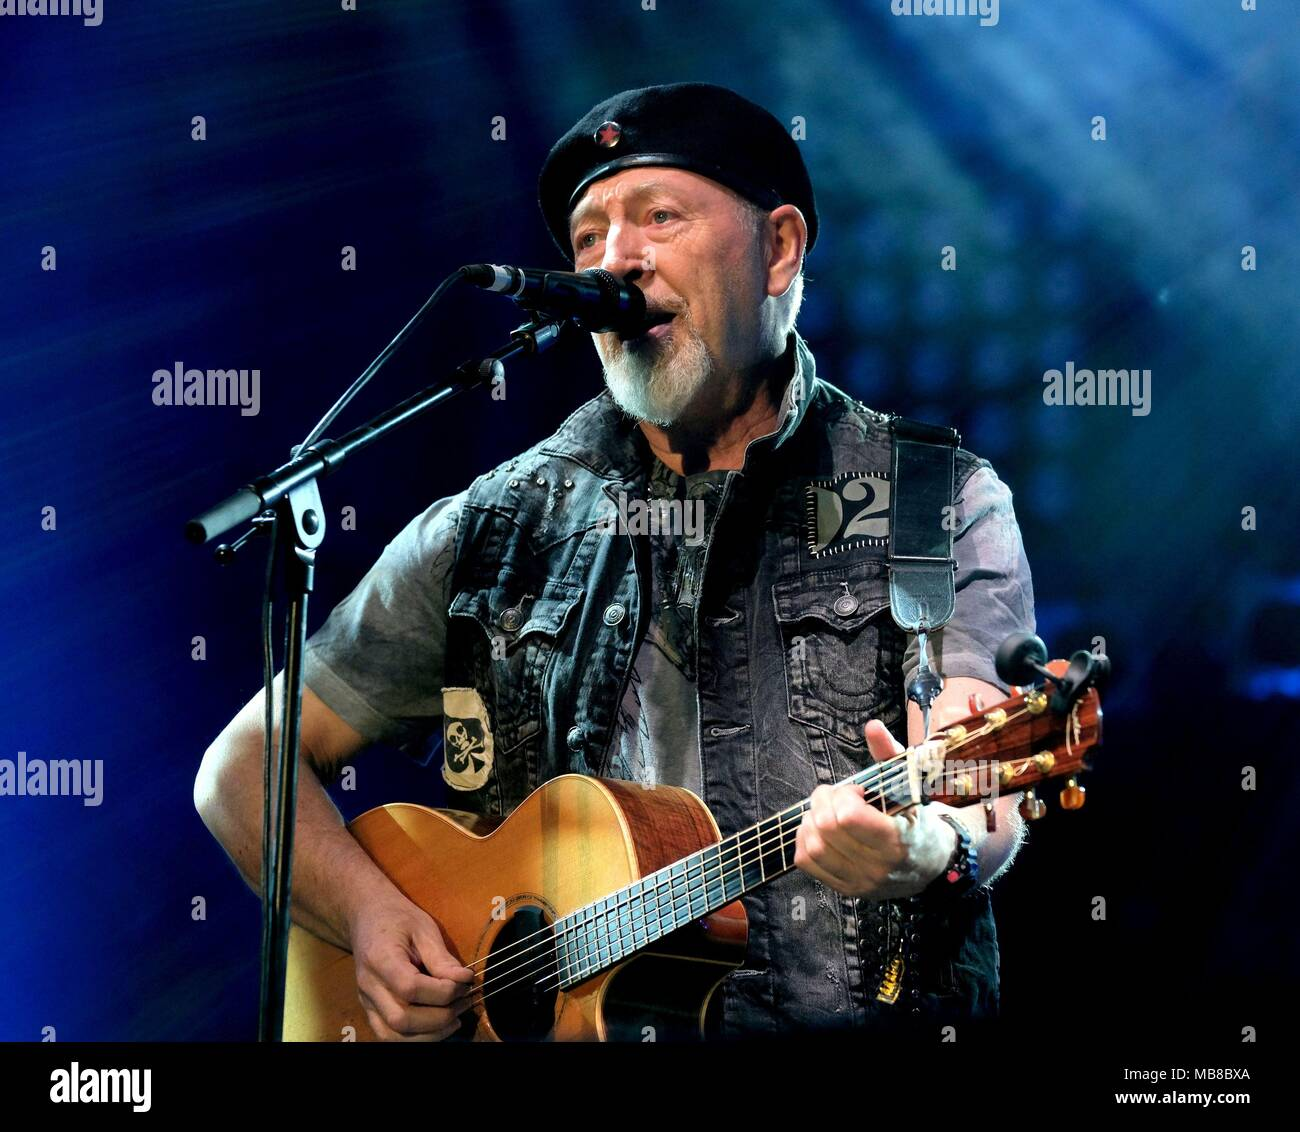 Richards Thompson performing at Cropredy 2017 - Stock Image